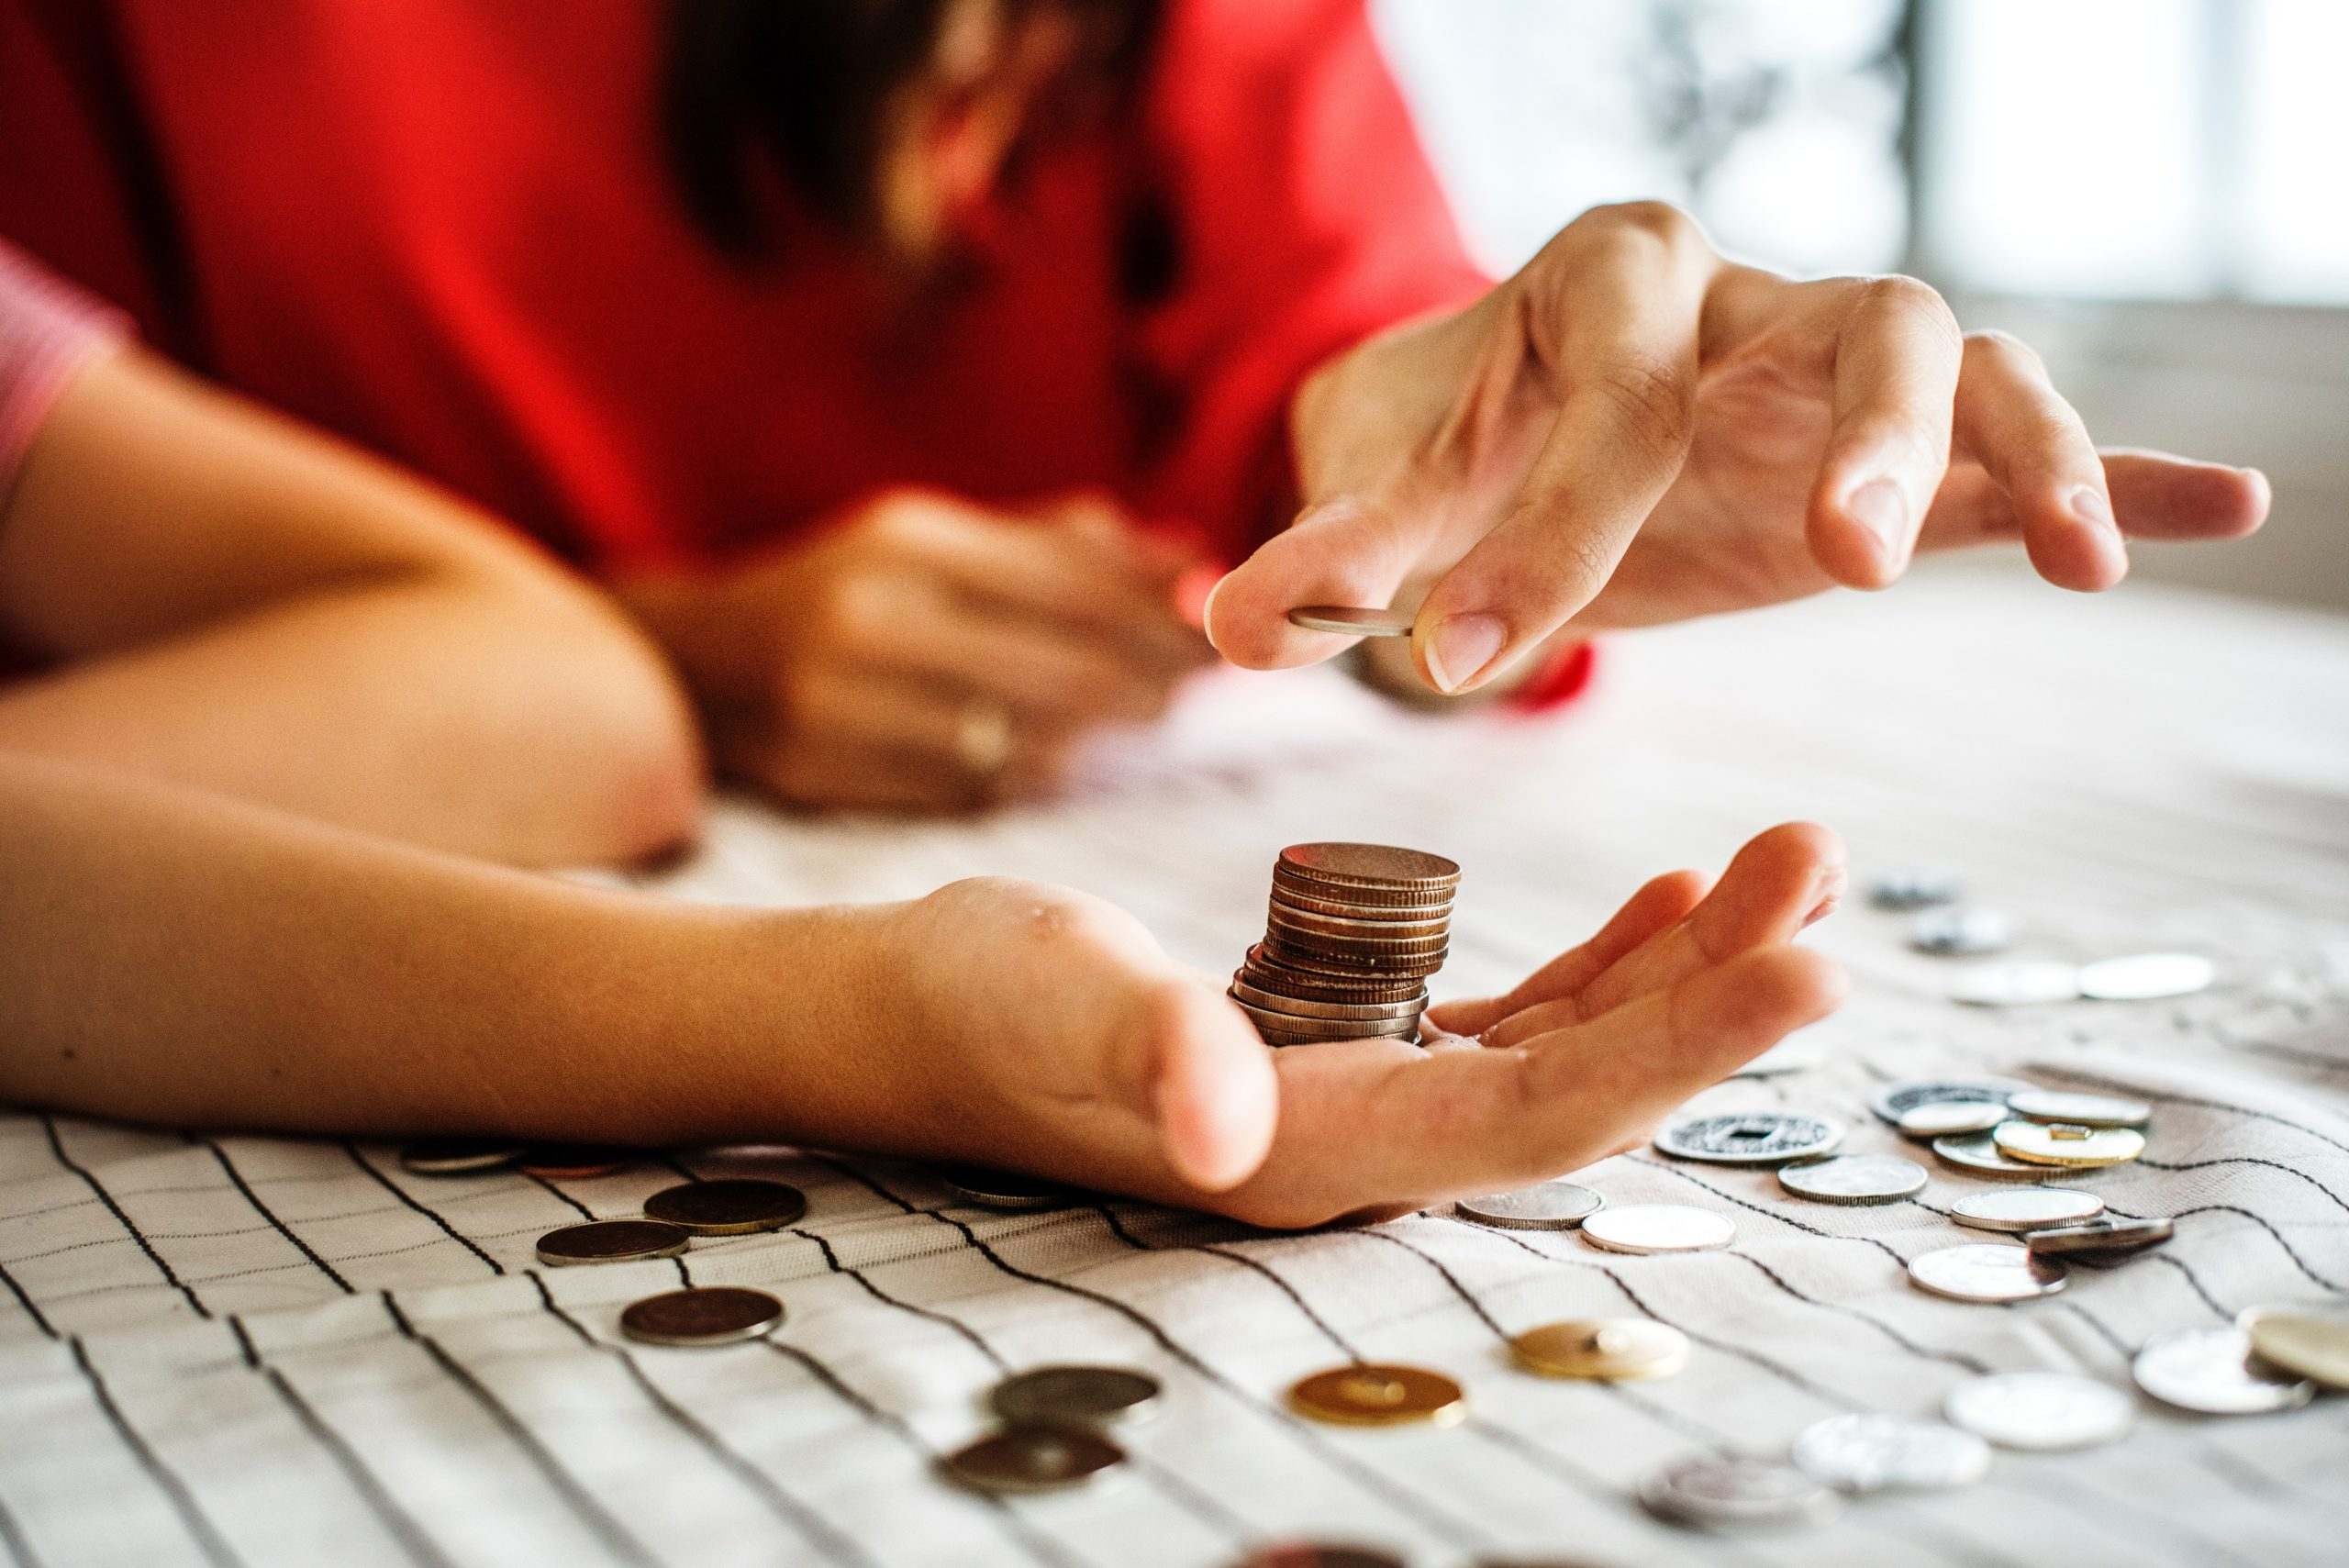 Ultimate Options To Earn Money As A Family